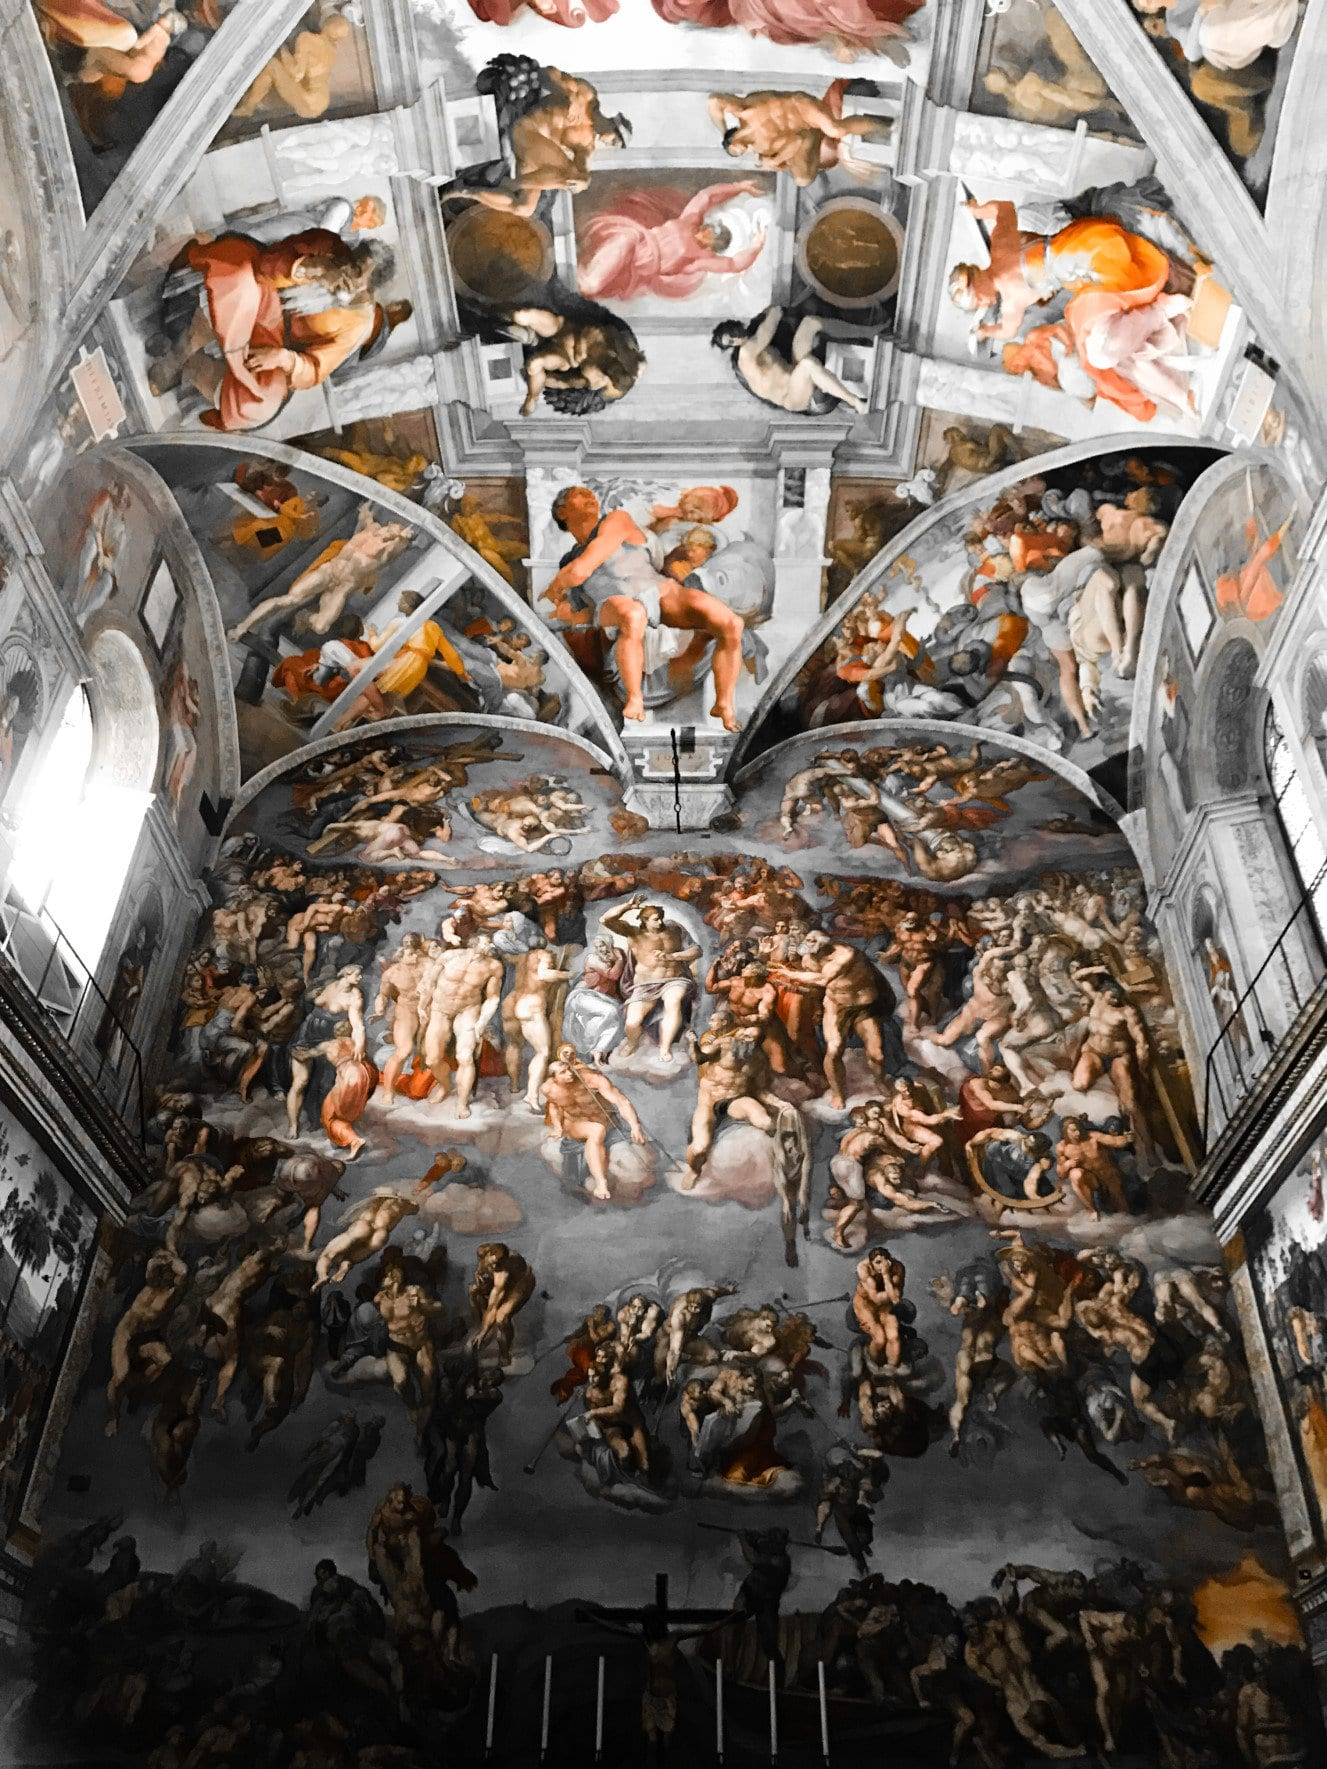 the Last Judgment and the ceiling of the Sistine chapel